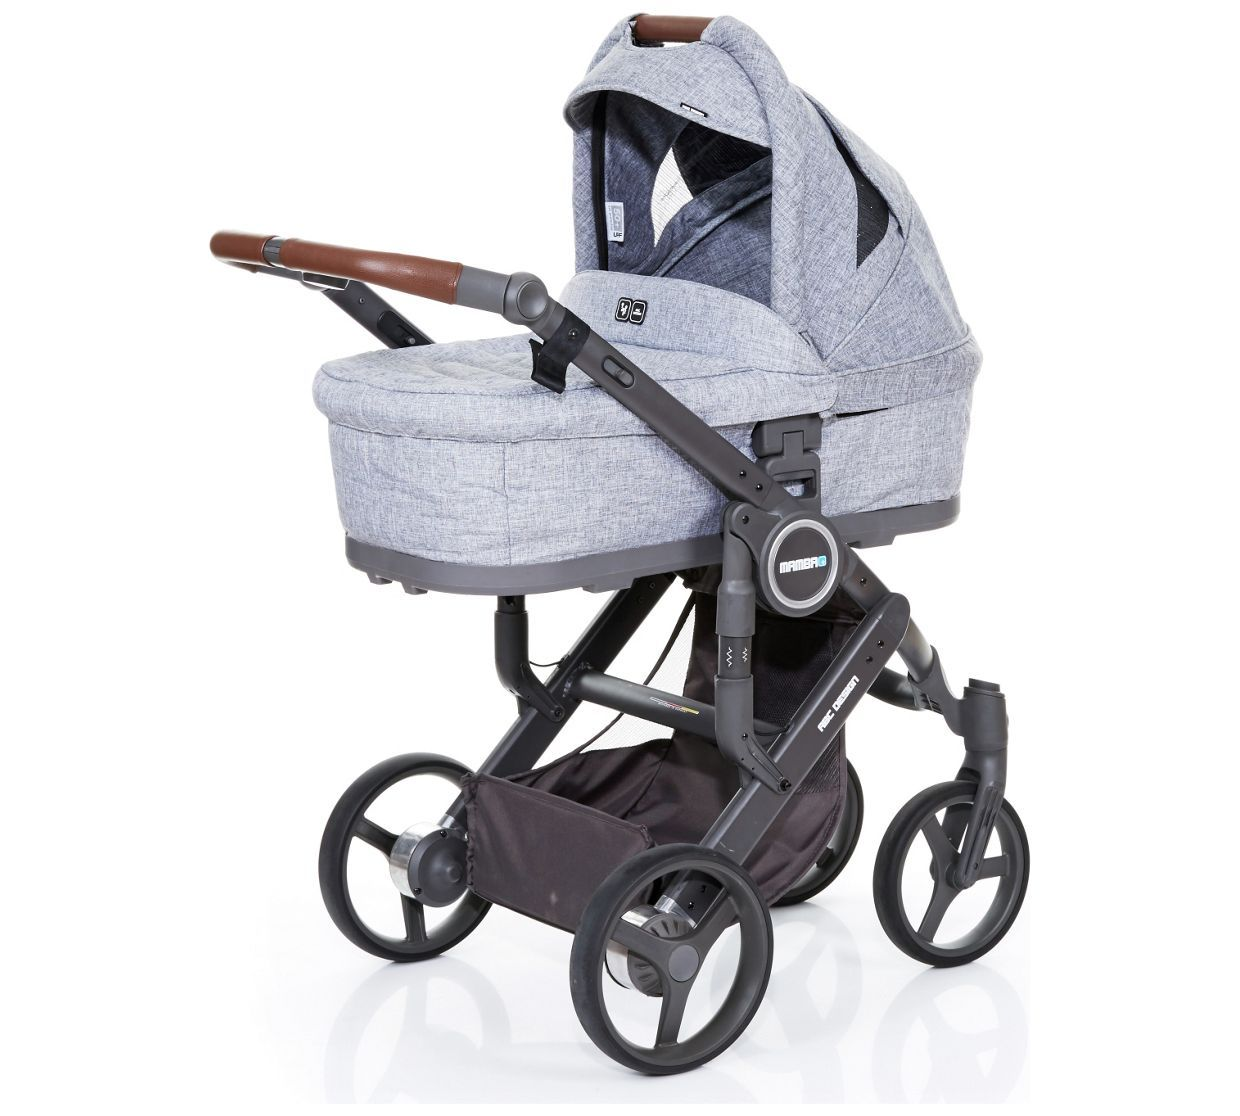 Pin by Parent Ideal on Pushchairs and Prams | Baby prams